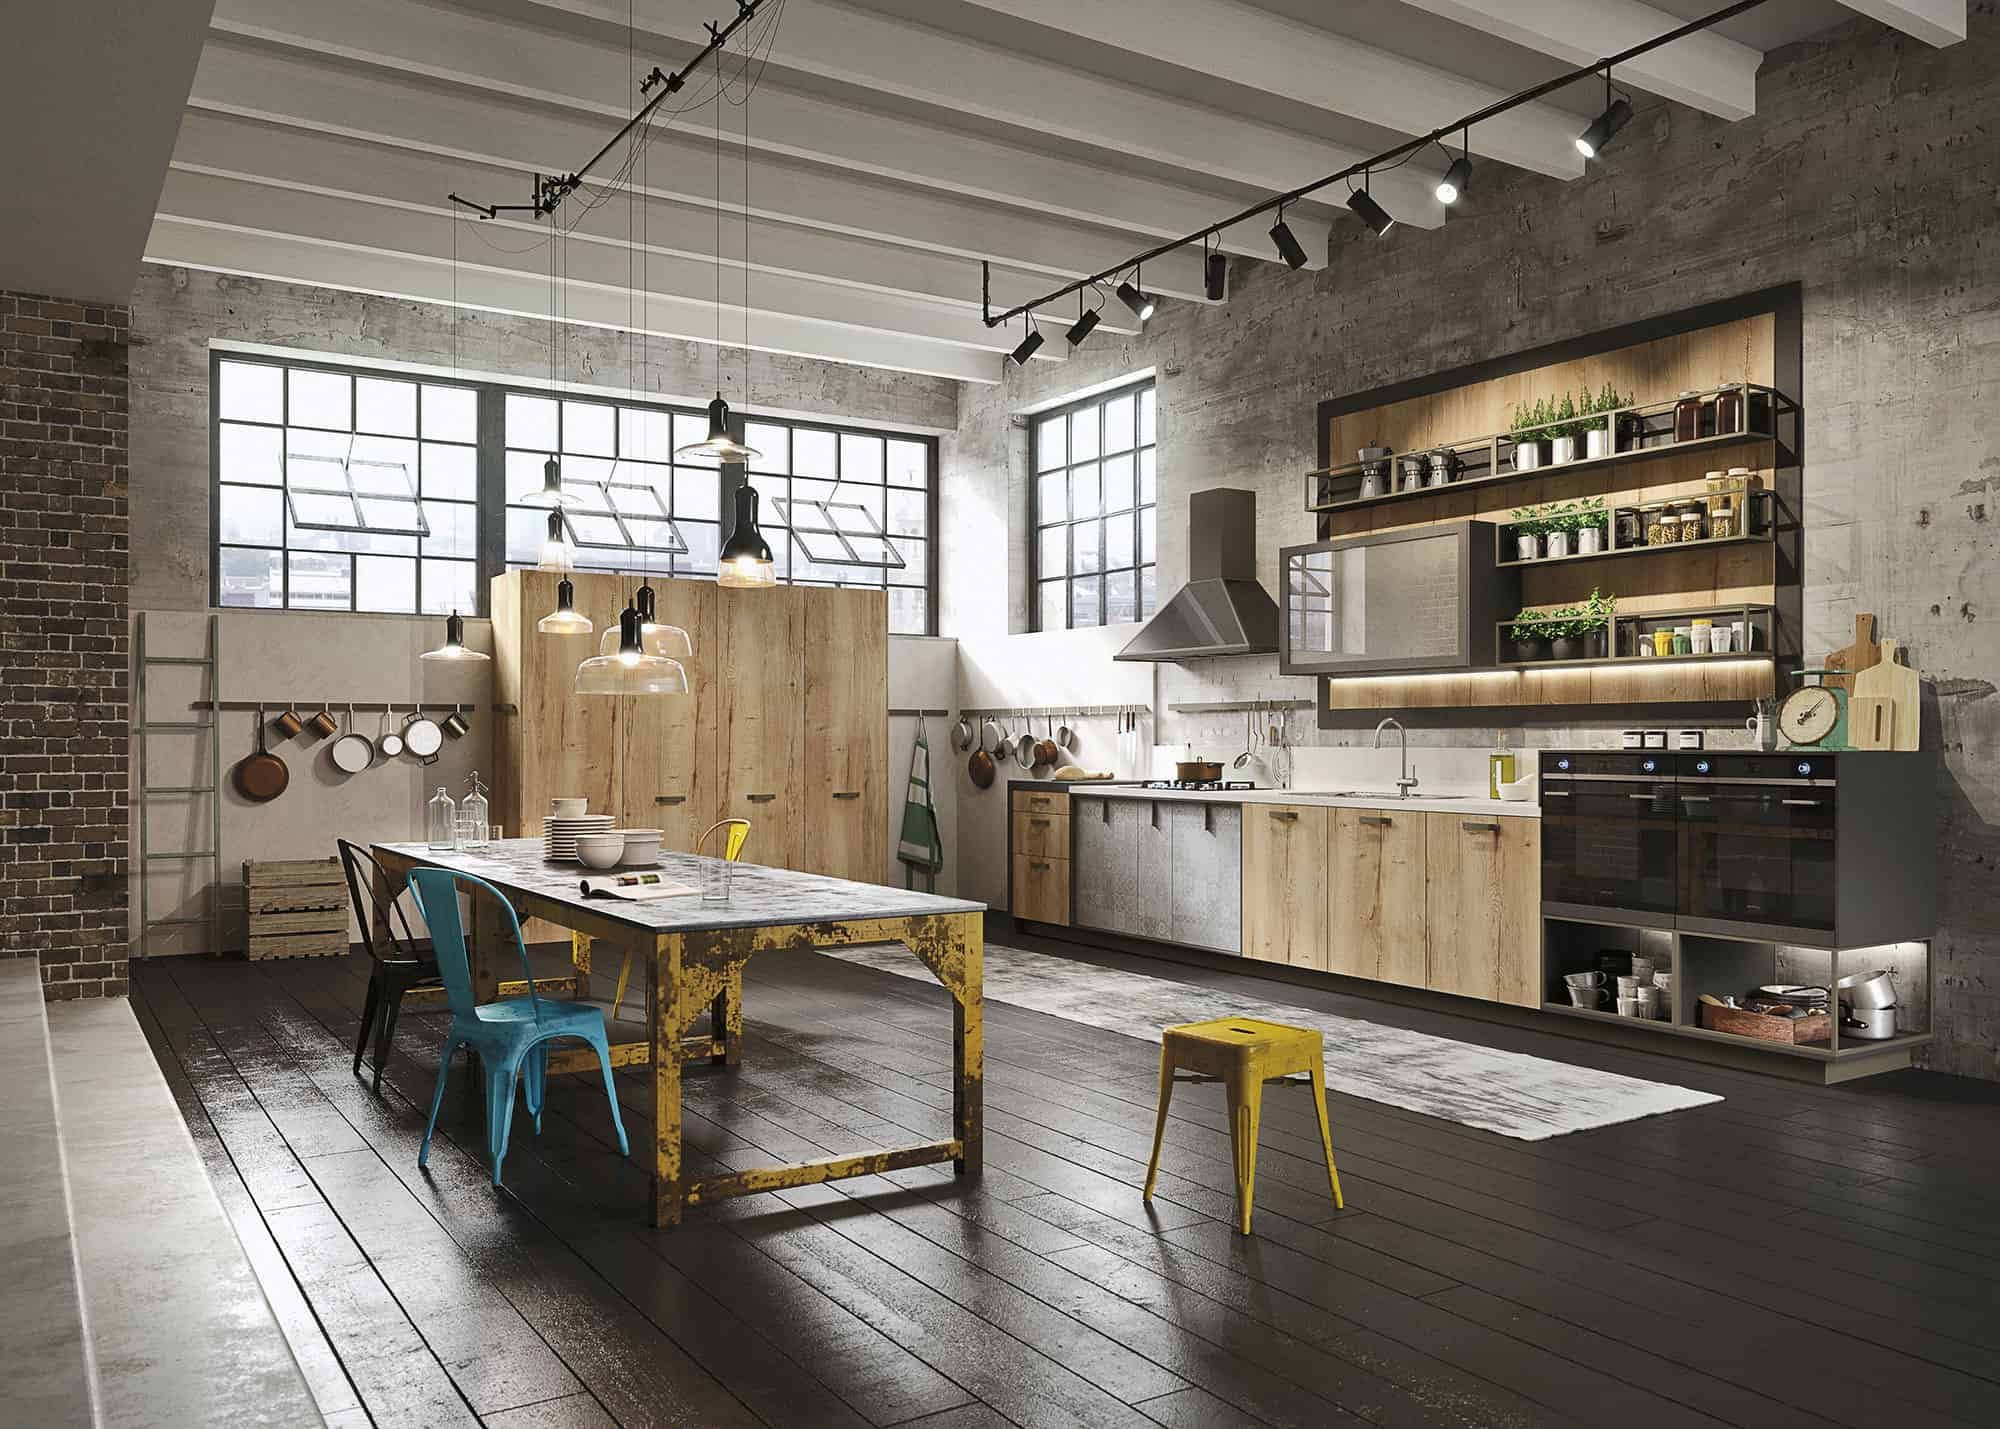 Loft Kitchen Ideas Pleasing Kitchen Design For Lofts 3 Urban Ideas From Snaidero